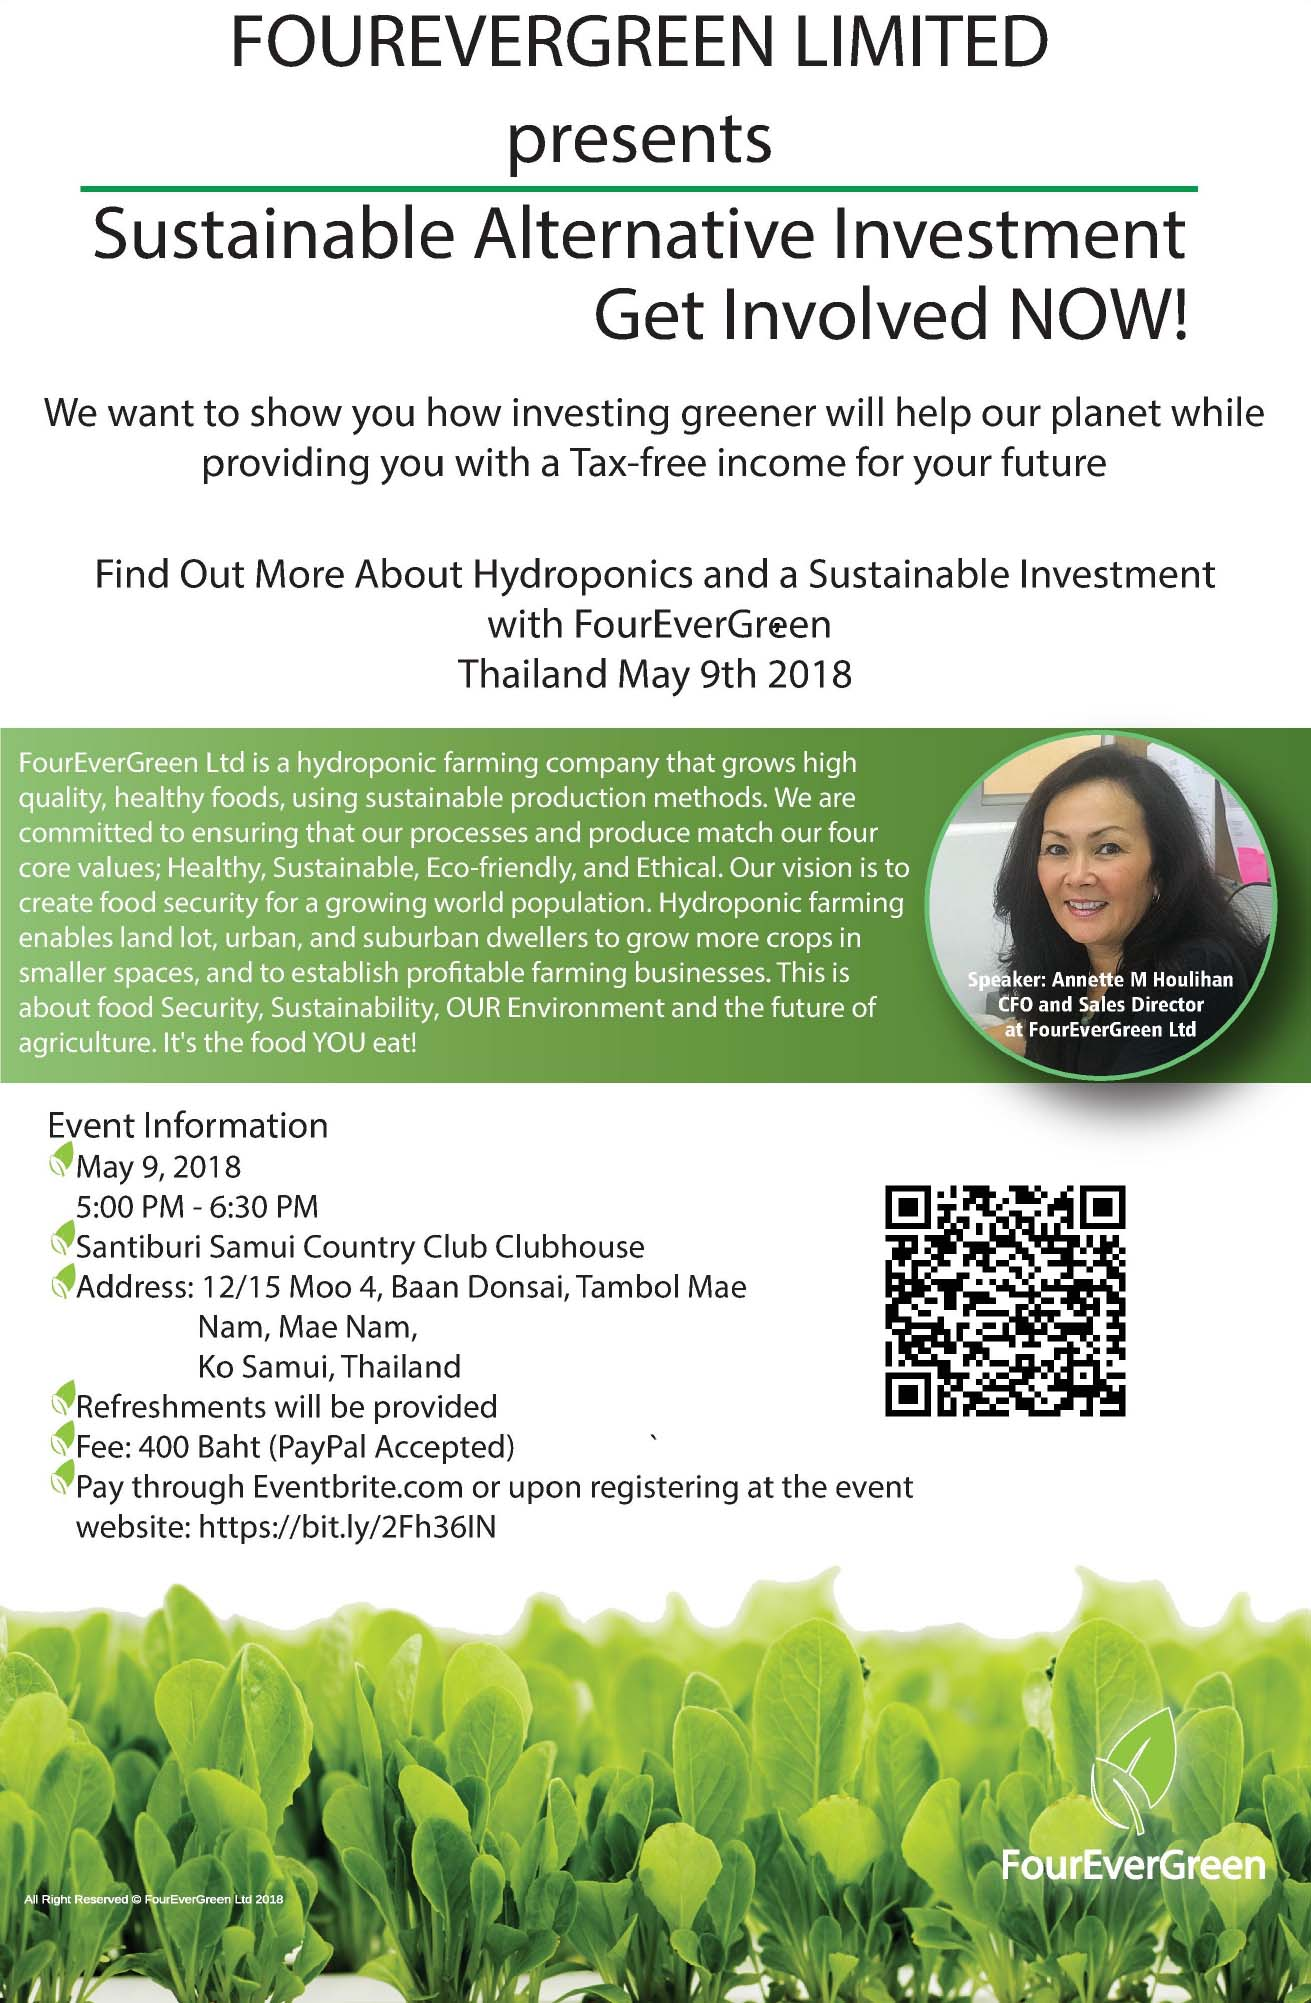 FOUREVERGREEN LIMITED  presents – Sustainable Alternative Investment Get Involved NOW! | Samui Times